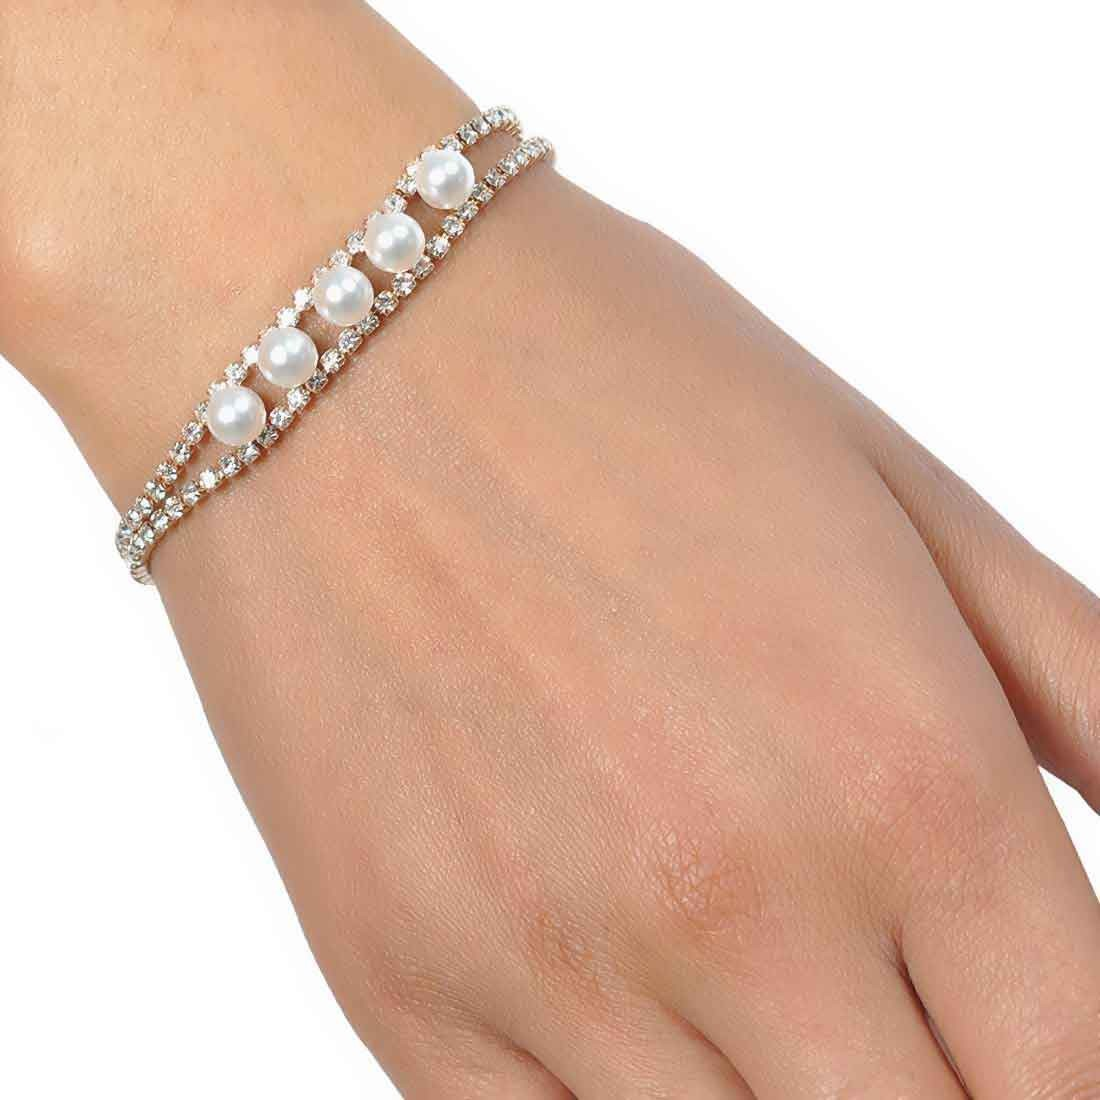 Hot White Gold Latest Adjustable Get-together Size Bracelet Alloy Maayra MY6797